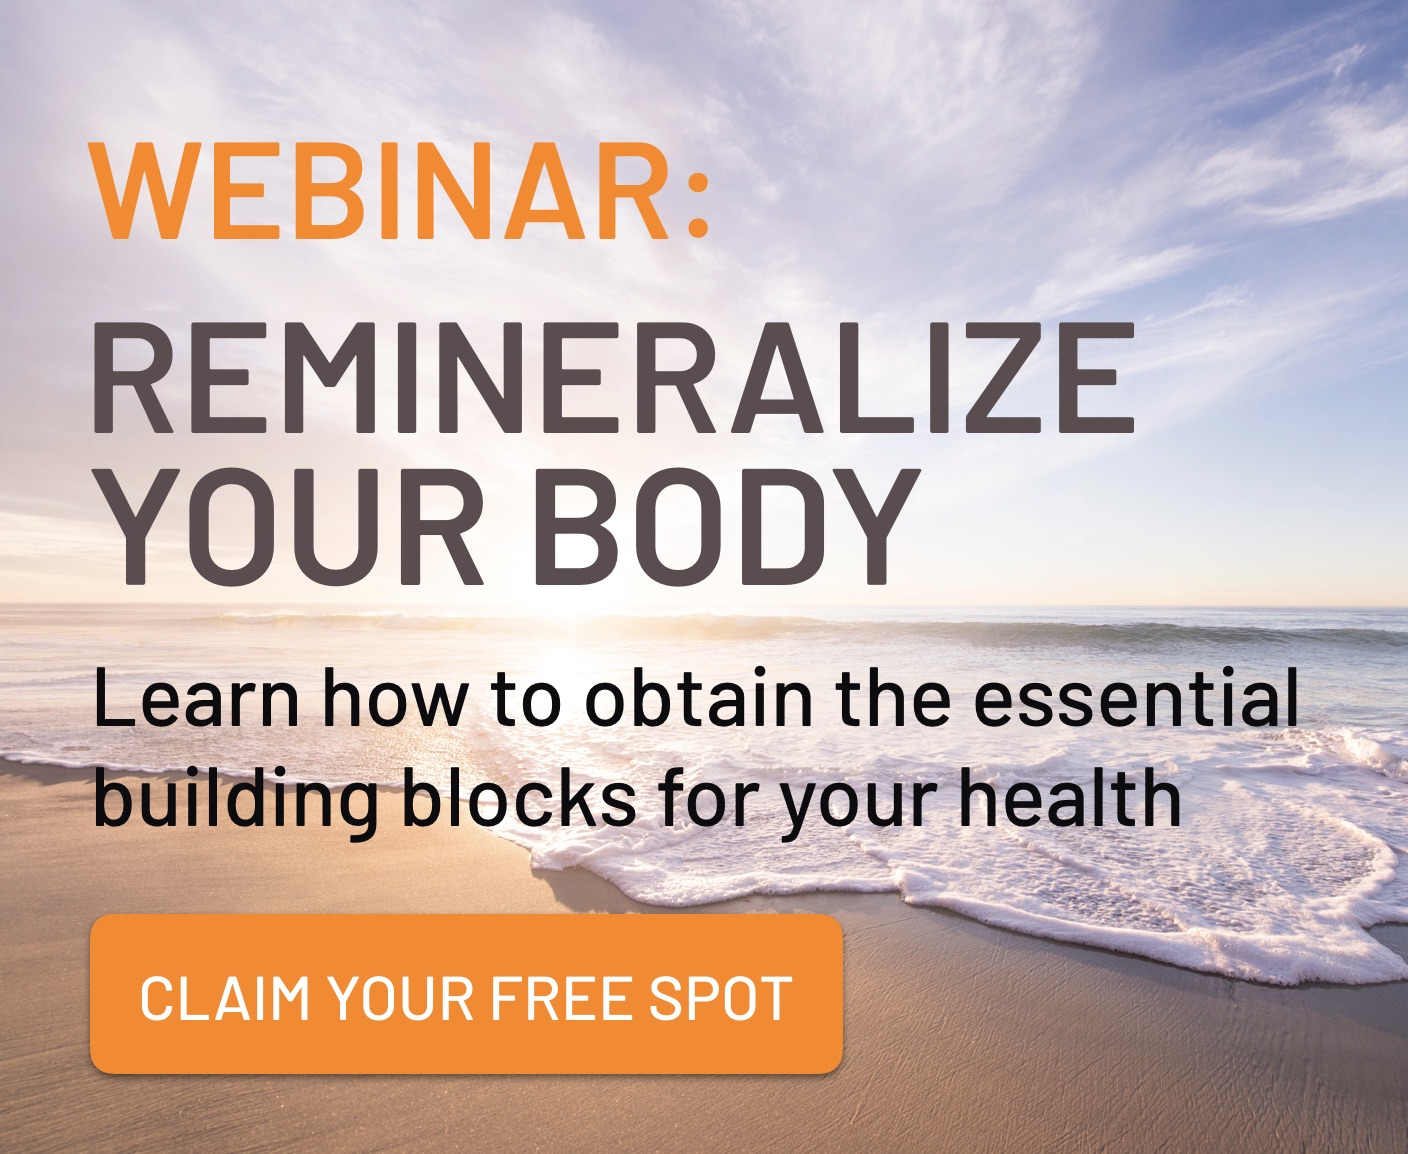 FREE webinar with Dr. Carolyn Dean